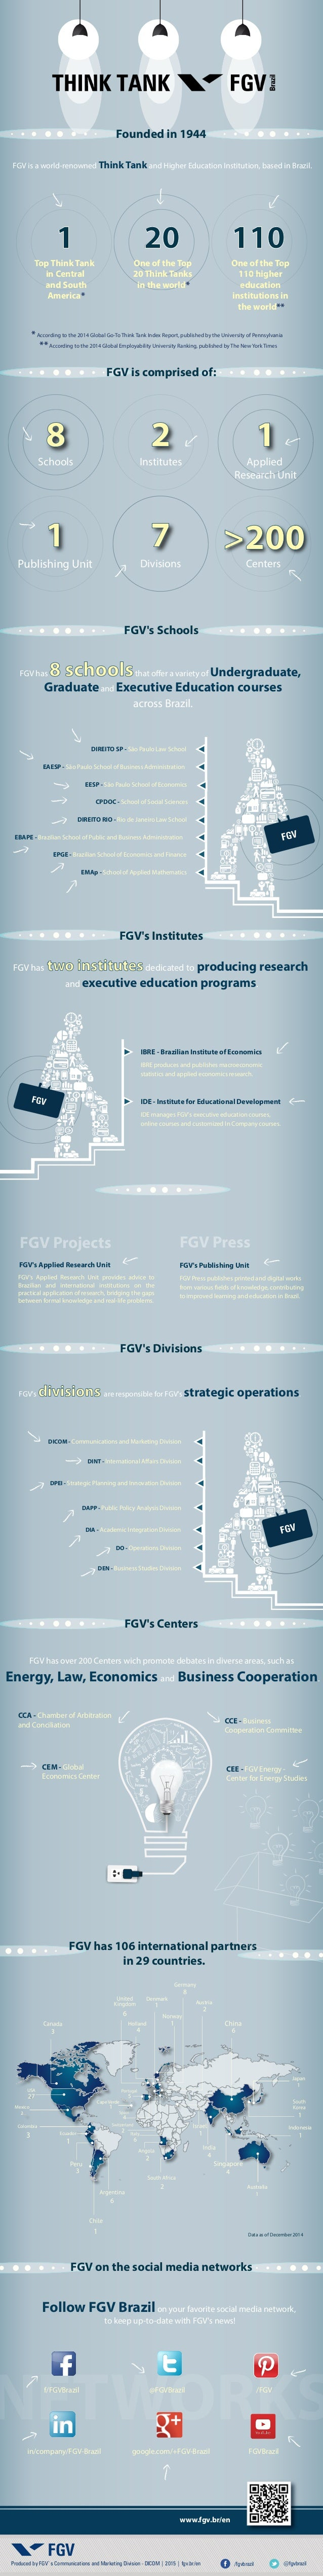 NETWORKS Founded in 1944 FGV is a world-renowned Think Tank and Higher Education Institution, based in Brazil. *According ...